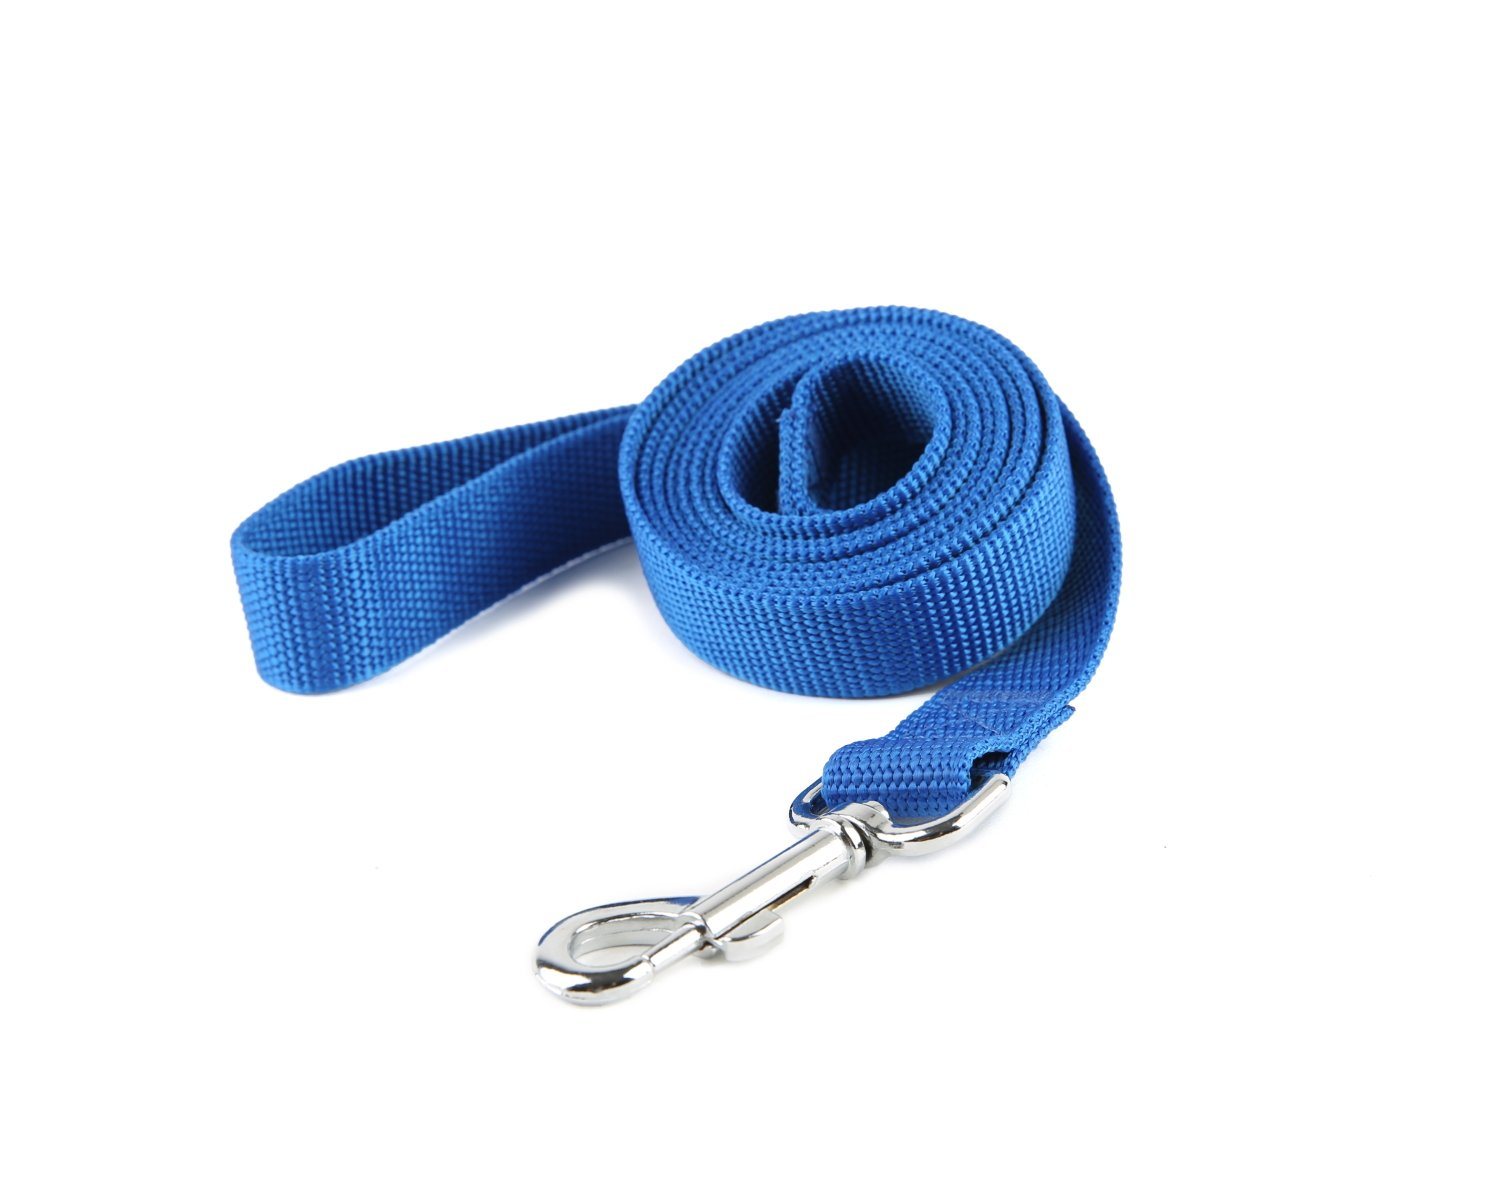 Taida Strong Durable Nylon Dog Training Leash, Traction Rope, 6 Feet Long, 1 Inch Wide, for Small and Medium Dog